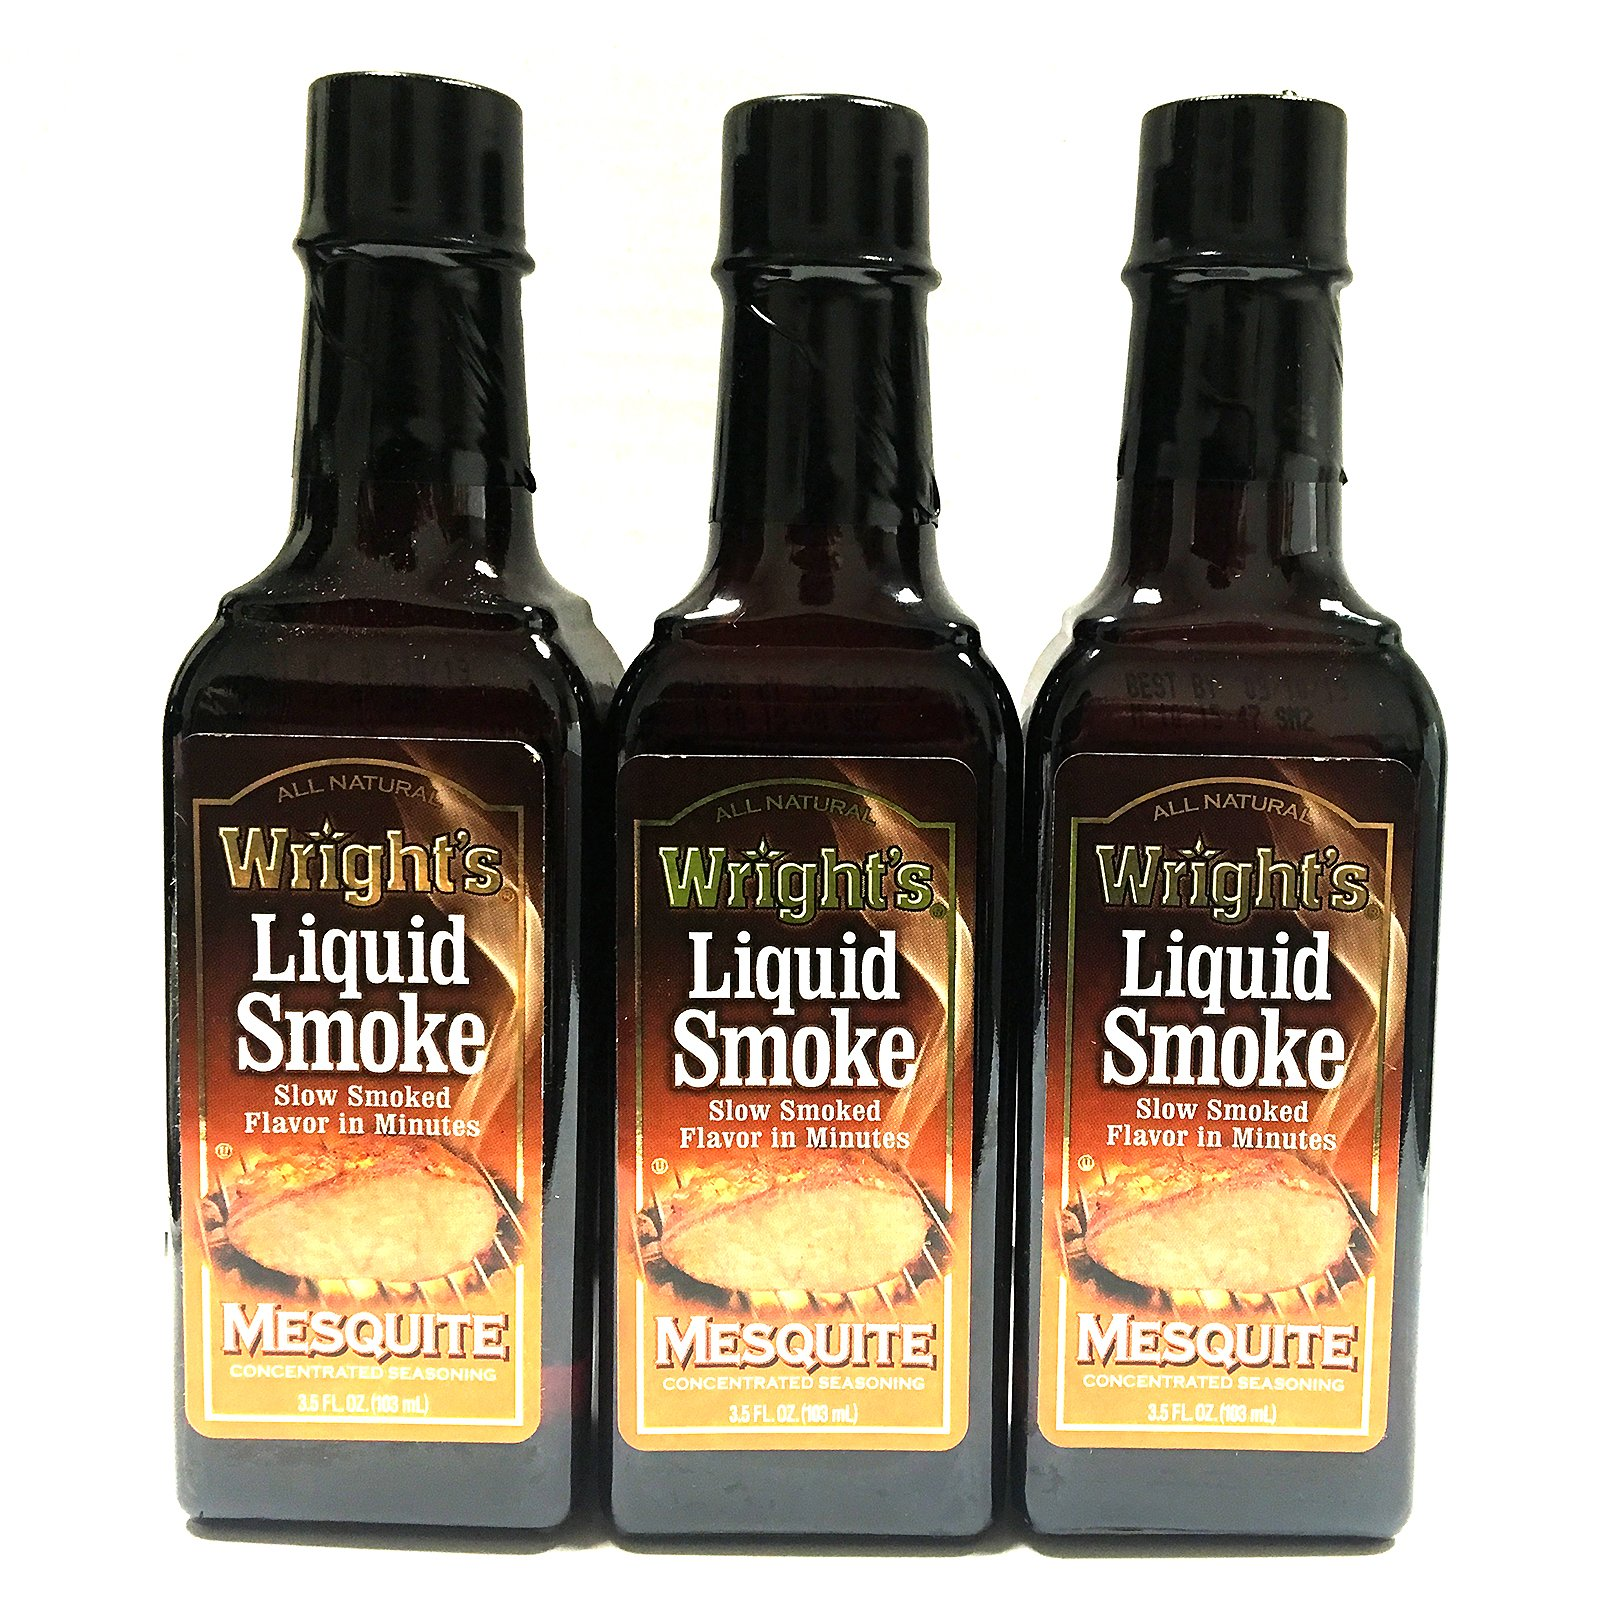 WRIGHT'S All Natural Mesquite Liquid Smoke - 3.5 Oz (Pack of 3)